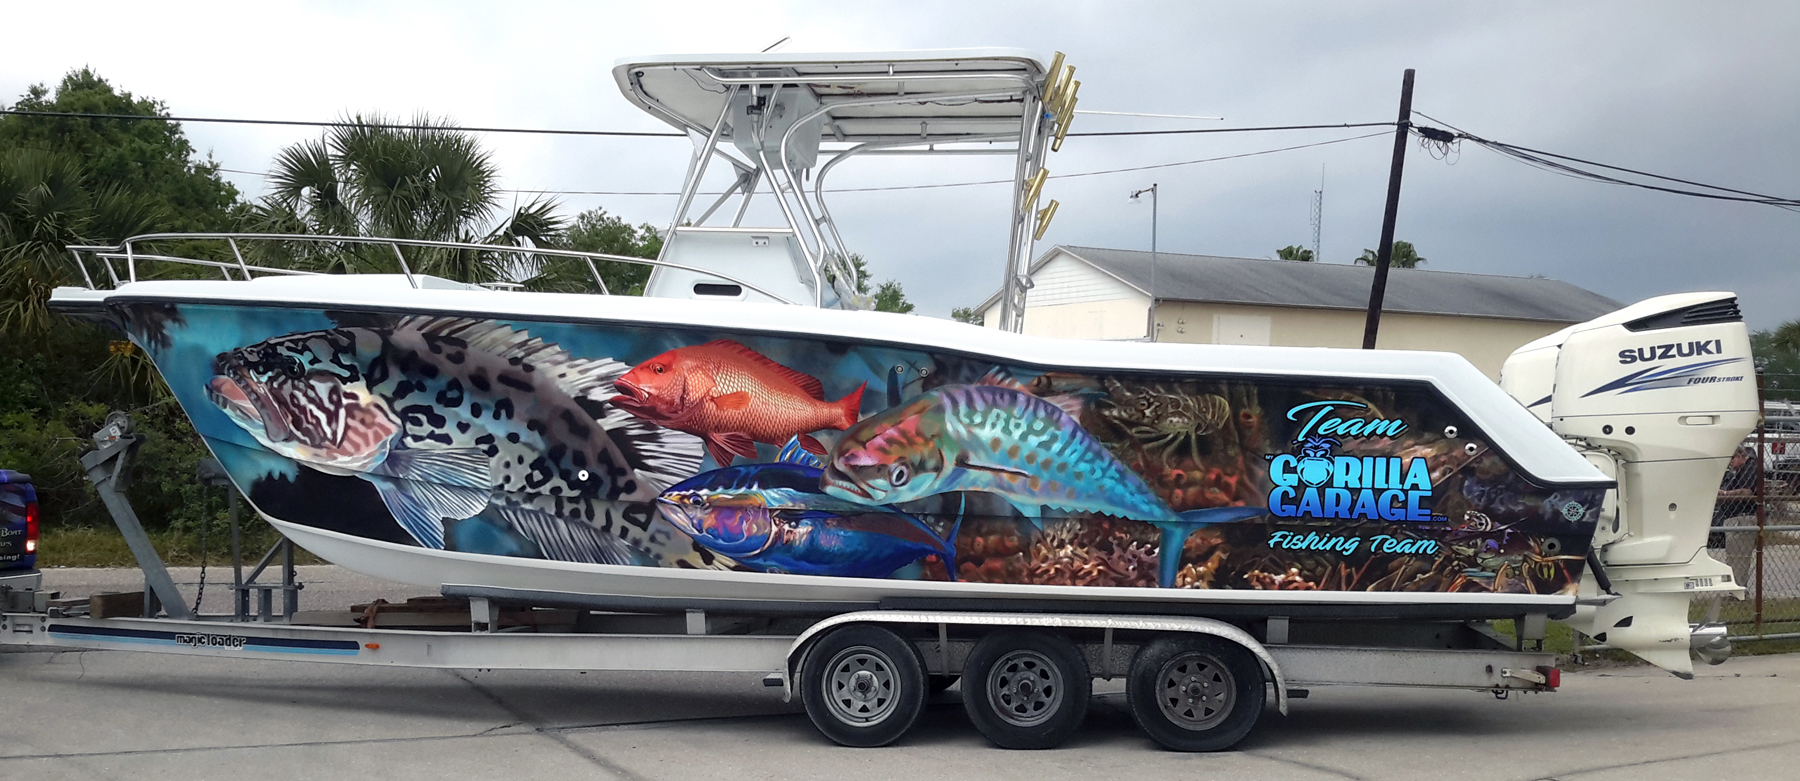 boat-wrap-bottom-fishing-art-desing-jason-mathias.jpg